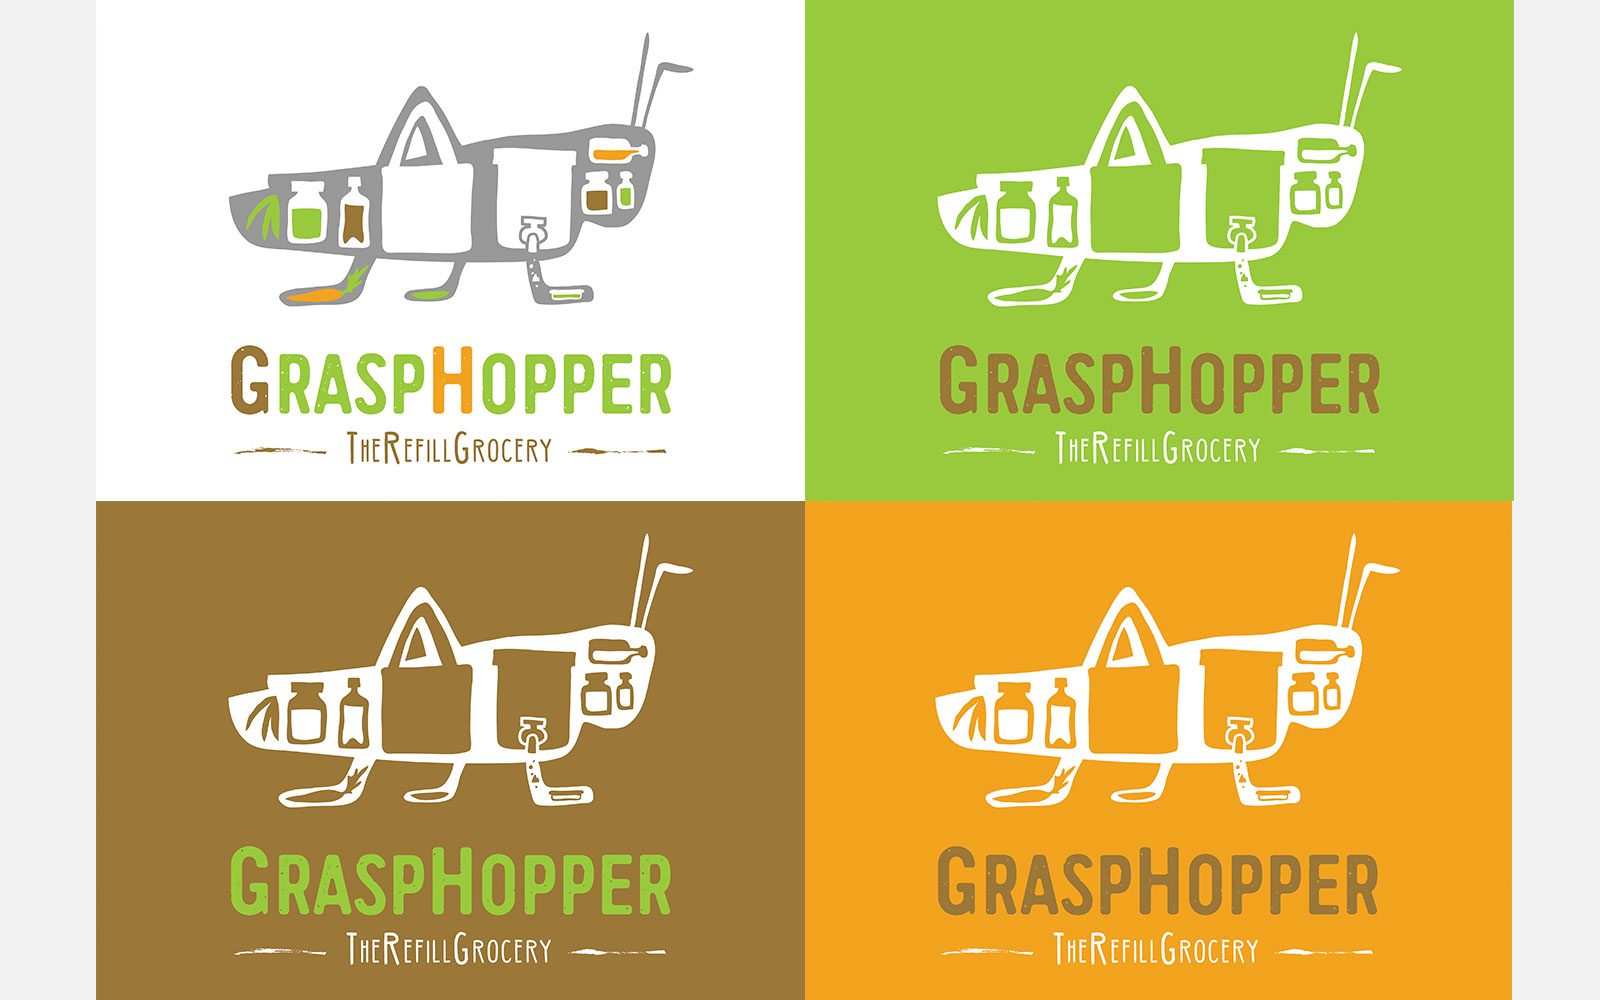 BL-Graphics - Grasphopper - logos